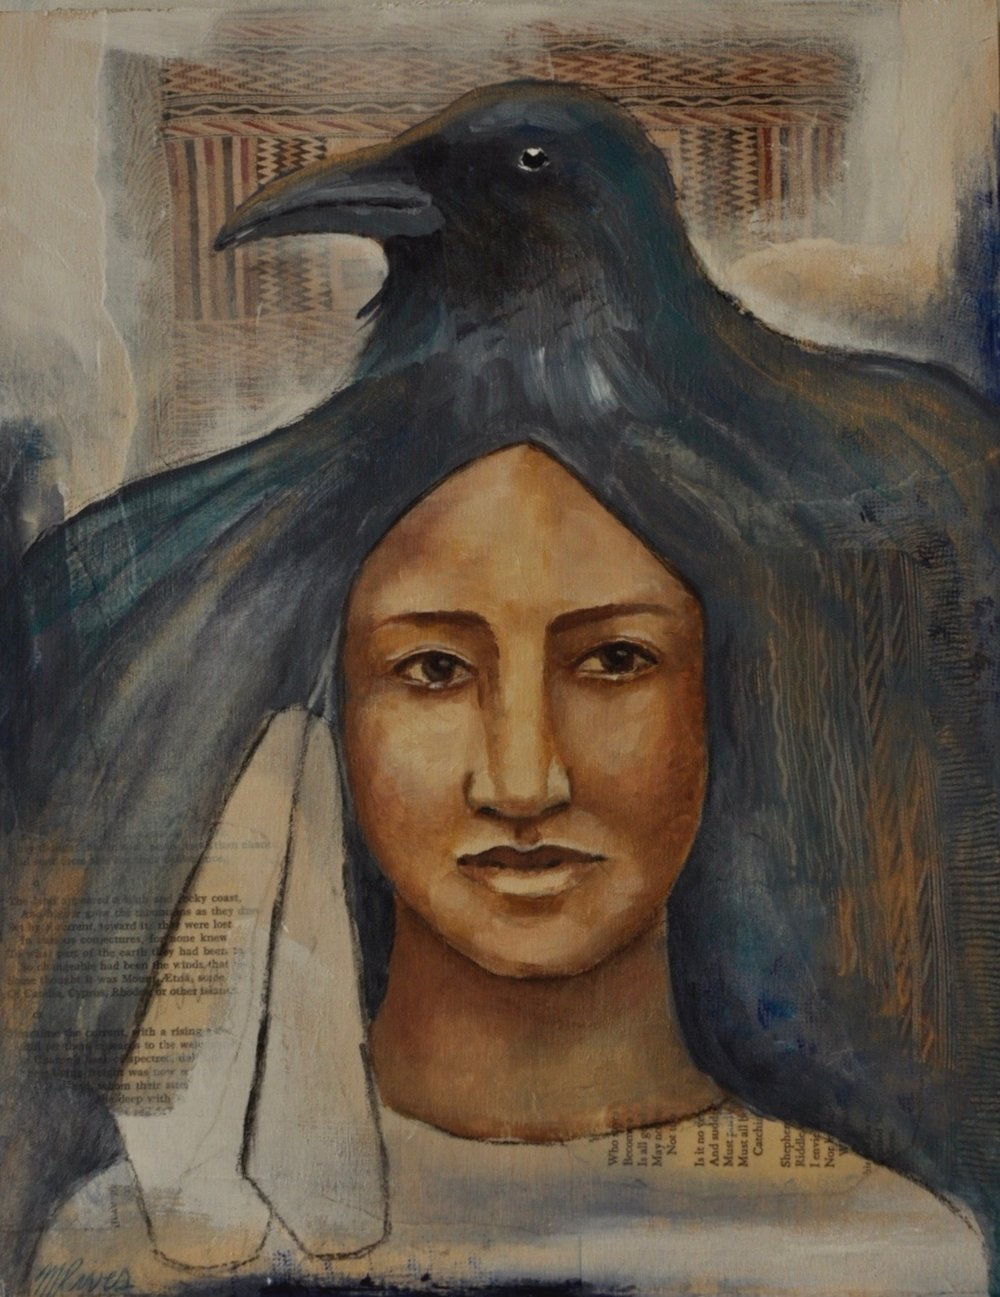 Raven Voice Mixed Media Painting by Melanie Rivers